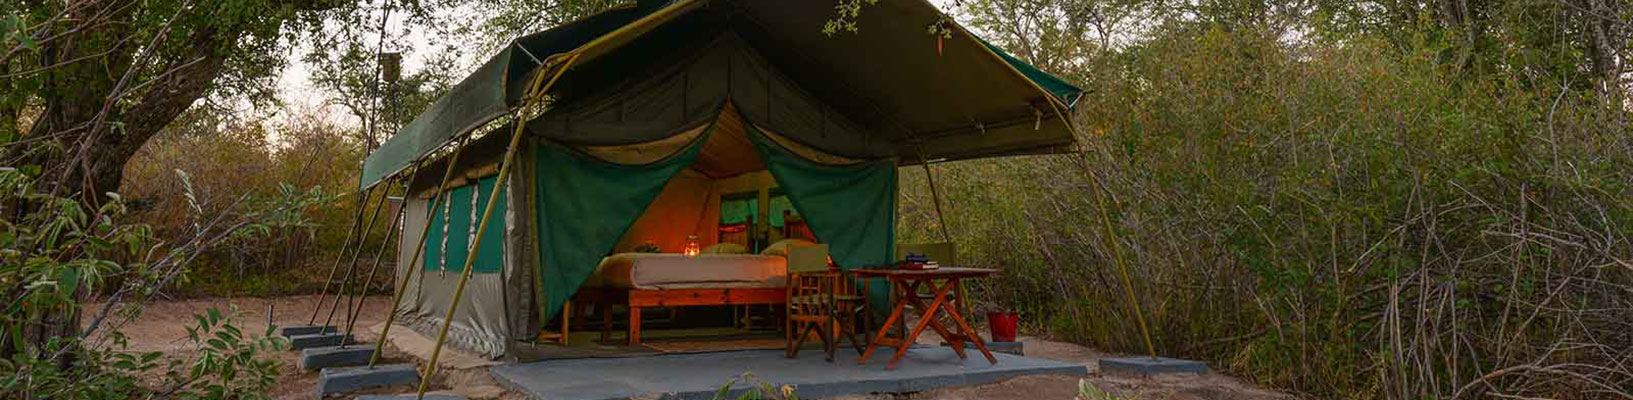 3-tuskers-bush-camp-tent6.jpg